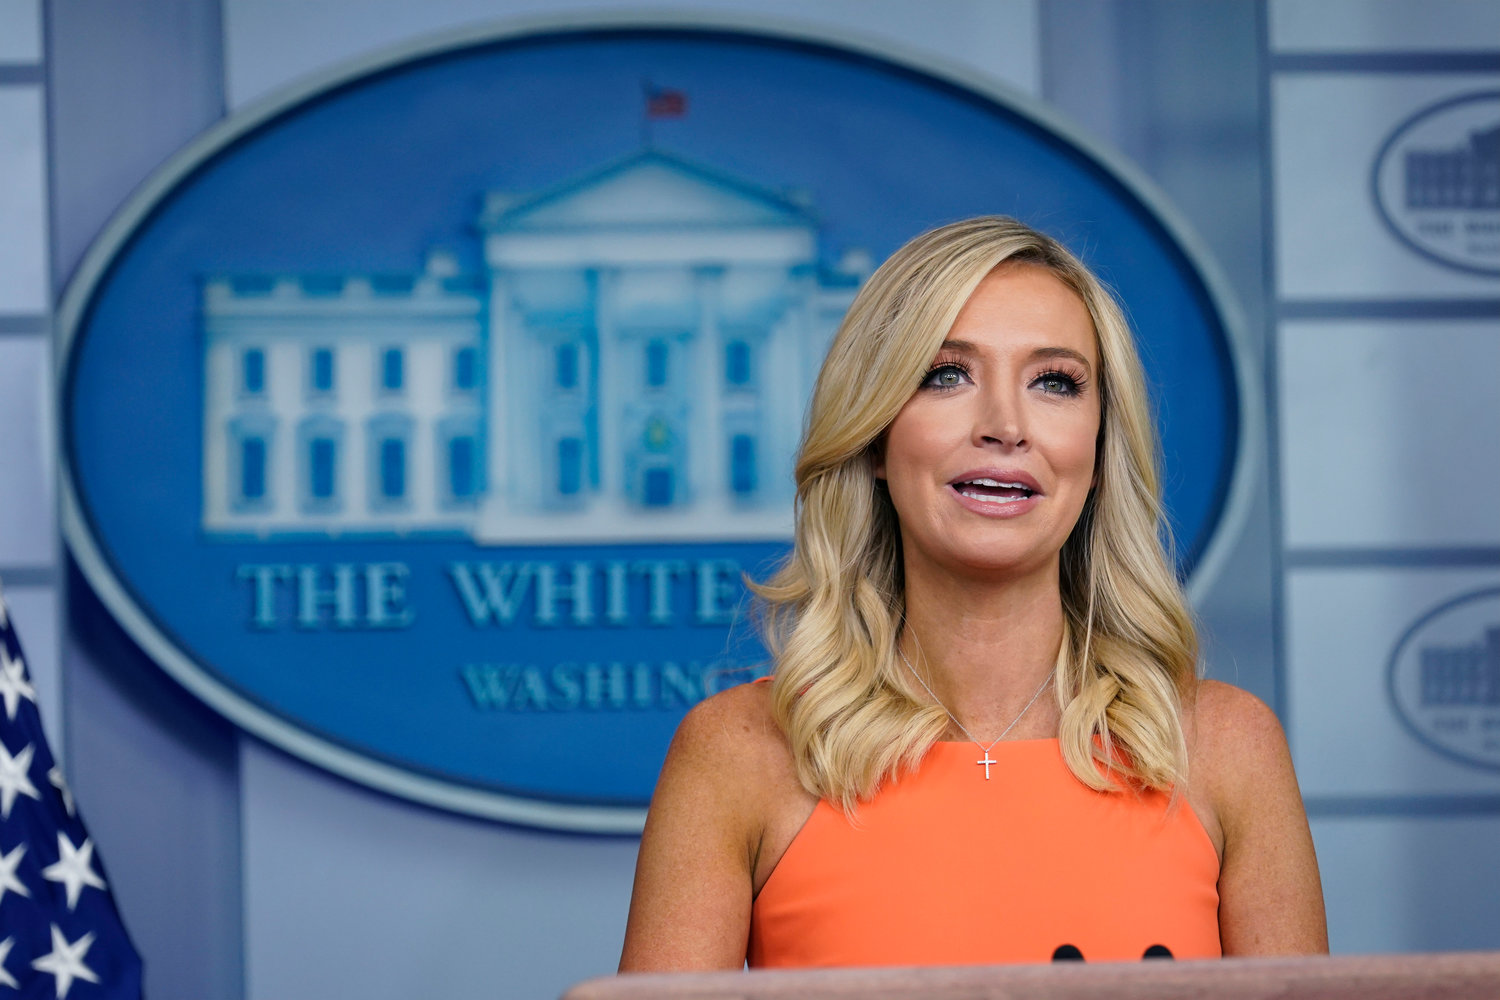 White House press secretary Kayleigh McEnany speaks during a press briefing at the White House, Monday, June 29, 2020, in Washington. (AP Photo/Evan Vucci)...